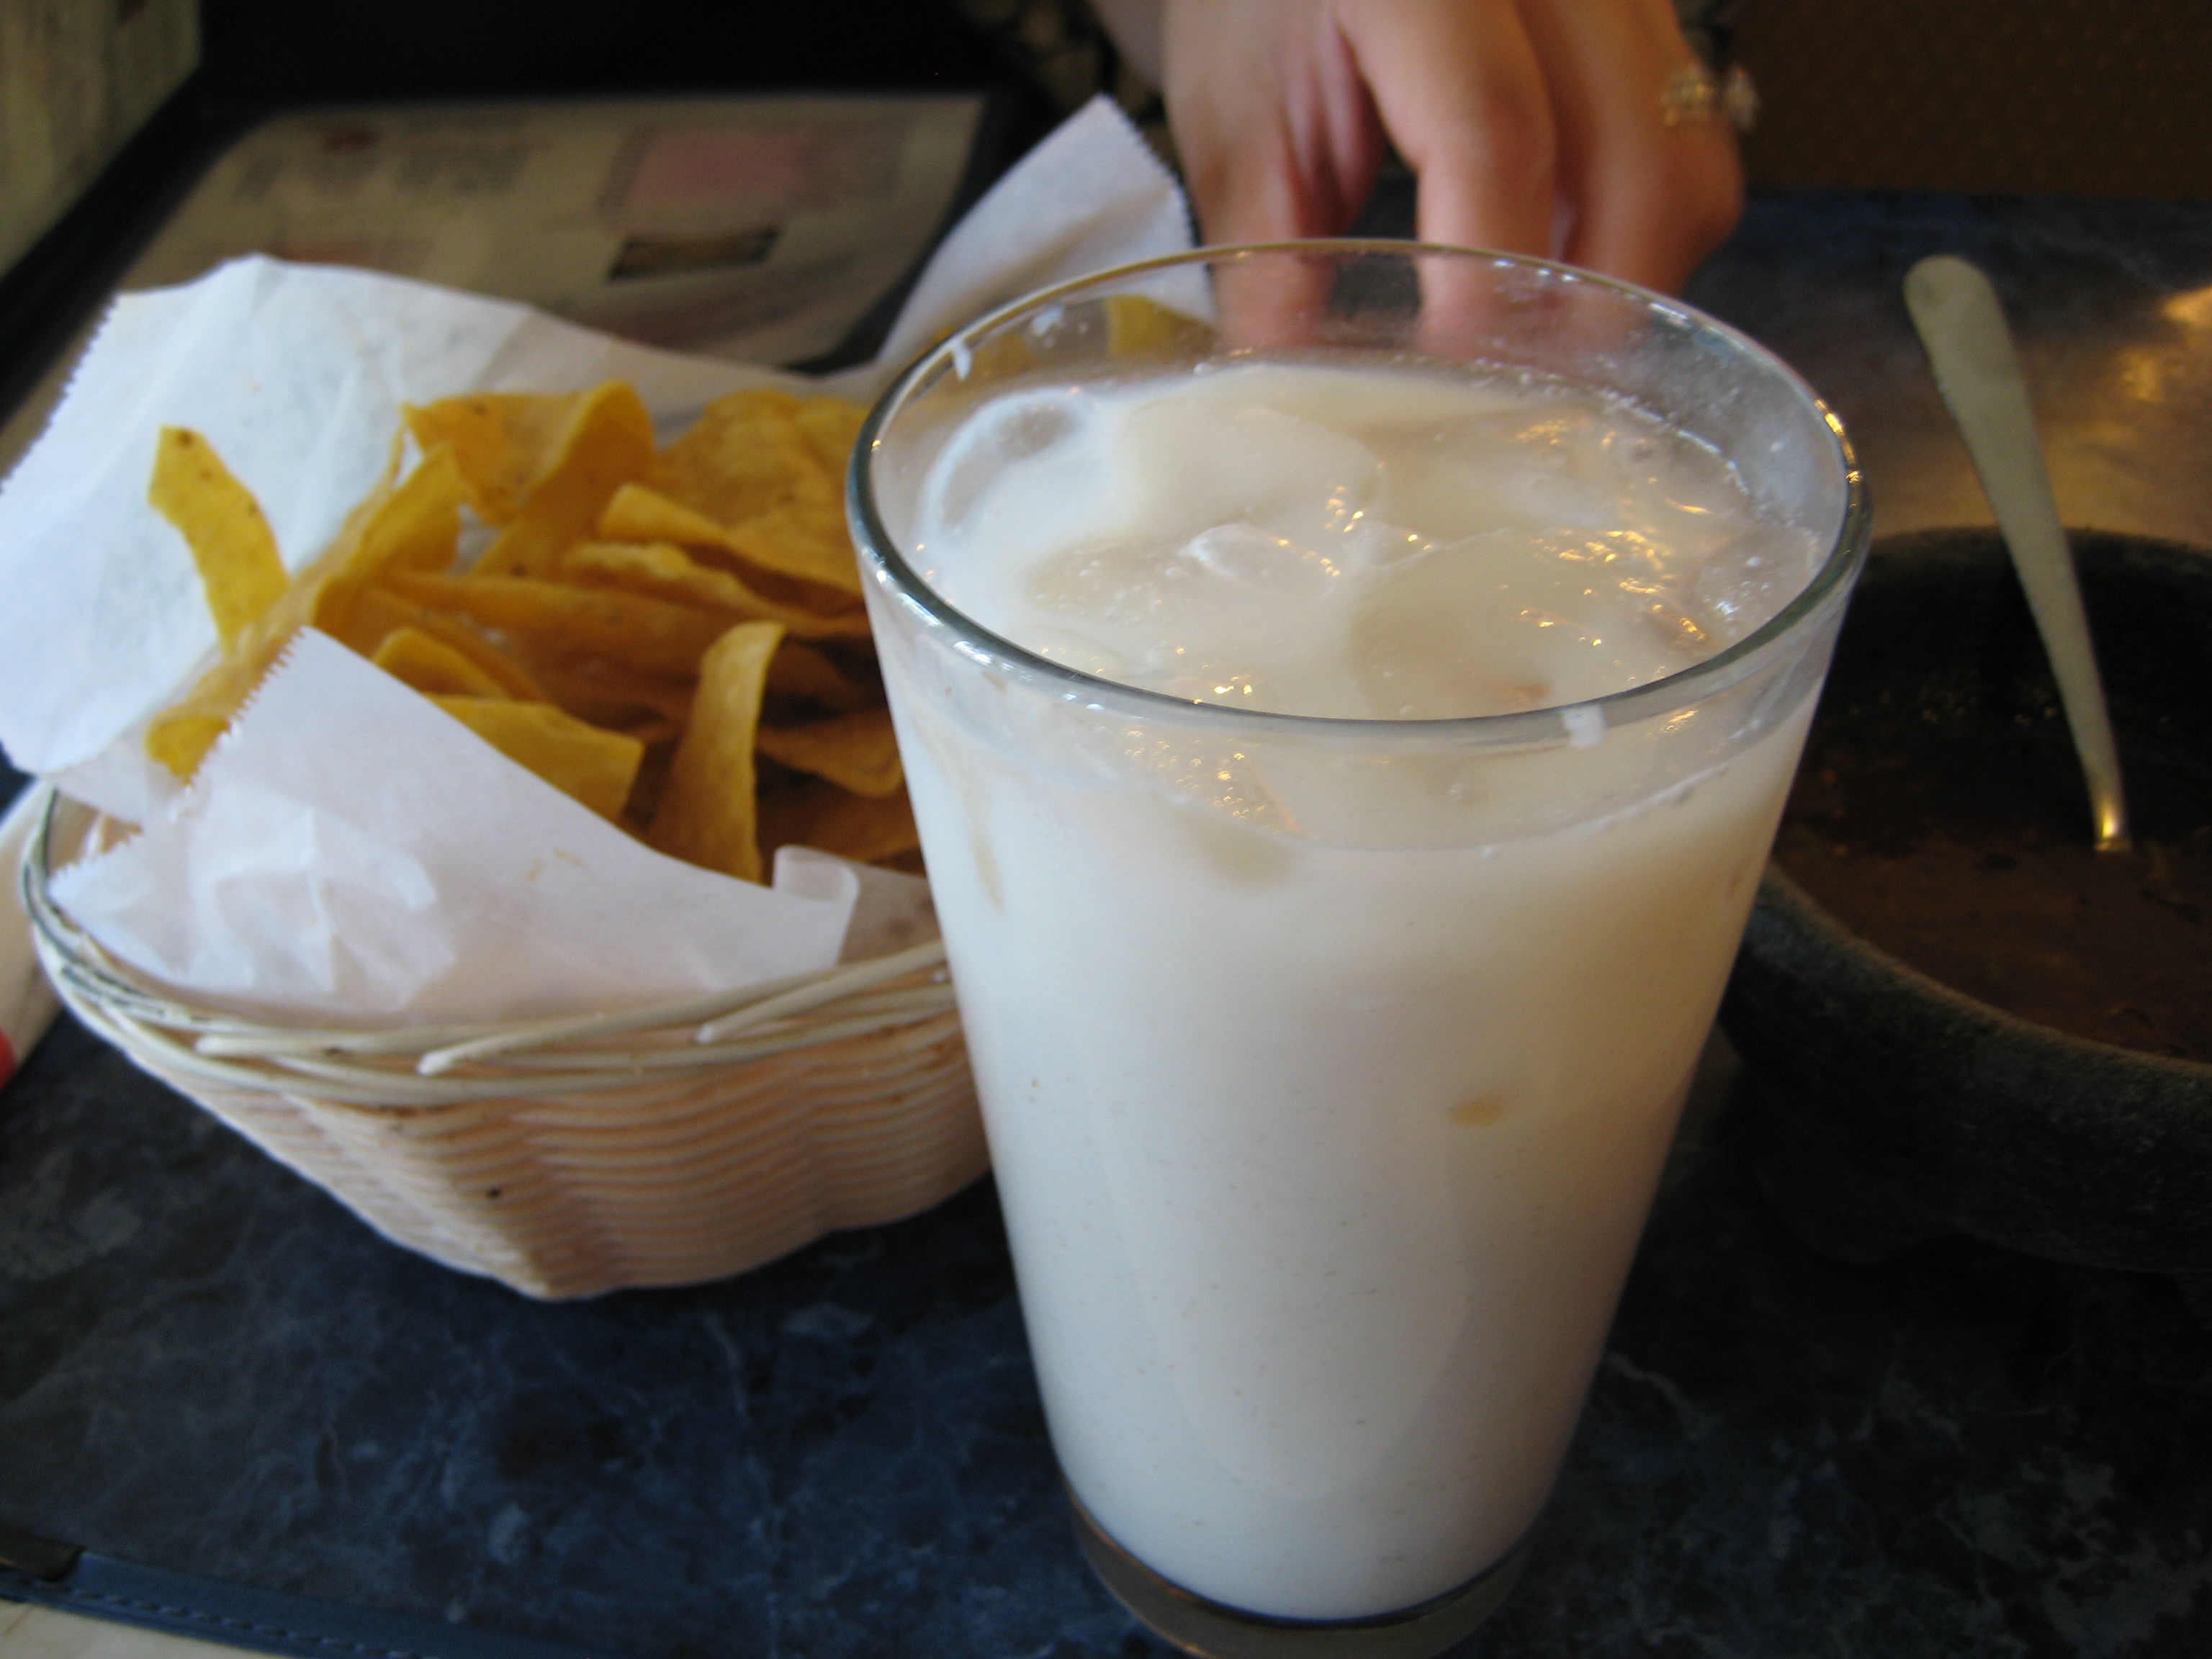 File:Horchata de arroz.jpg - Wikimedia Commons